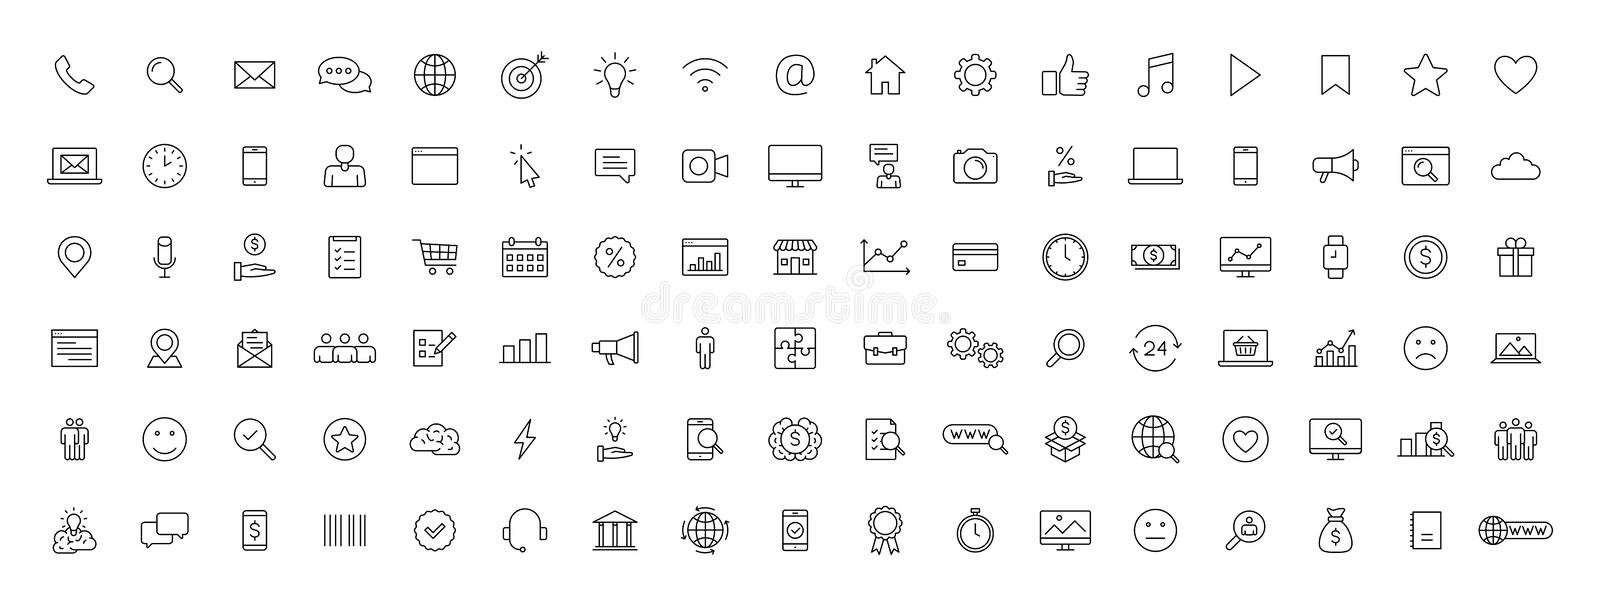 Big set of 100 Business and Finance web icons in line style. Money, bank, contact, office, payment, strategy, accounting,. Infographic. Icon collection. Vector stock illustration